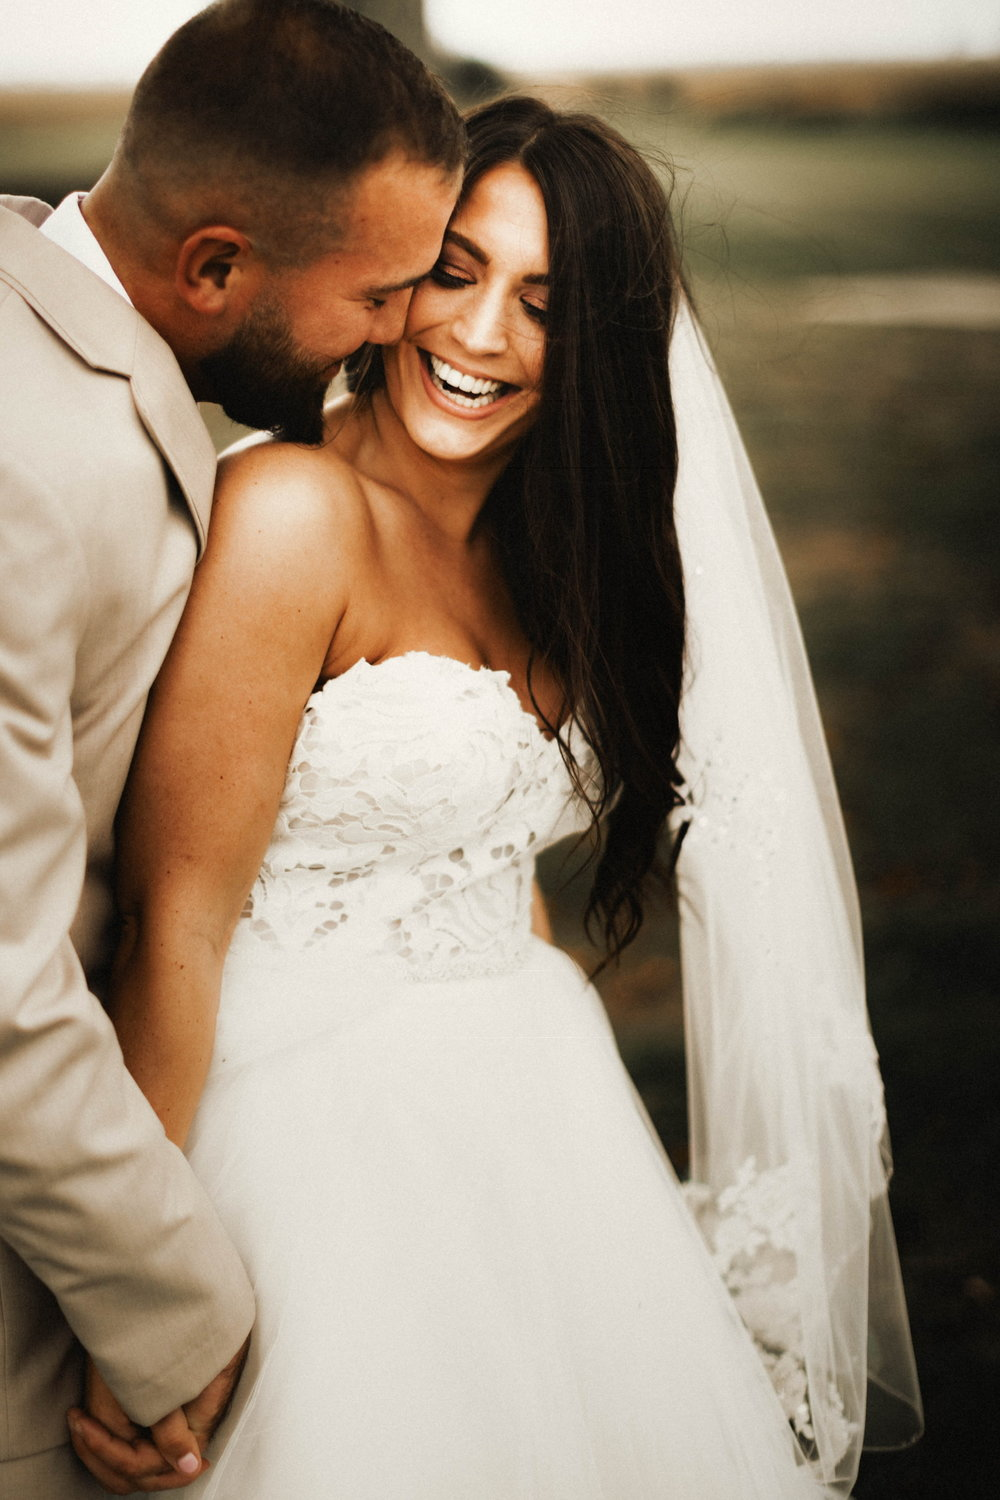 All of our Wedding Vendors: Reviewed | Pine Barren Beauty | wedding photos, wedding photography, wedding photography ideas, wedding portraits, bride and groom portraits, blush by Hayley Paige wedding dress